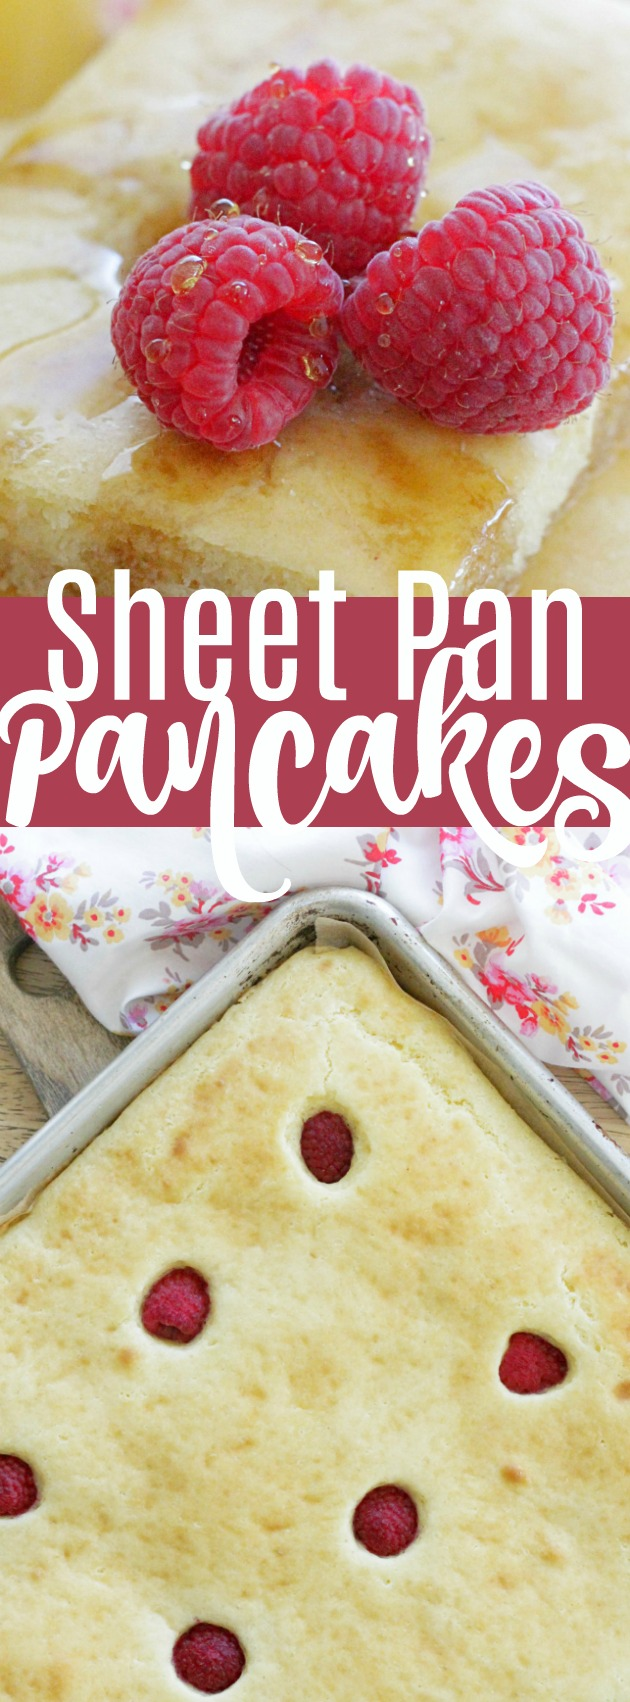 Sheet Pan Pancakes - perfect for meal prep